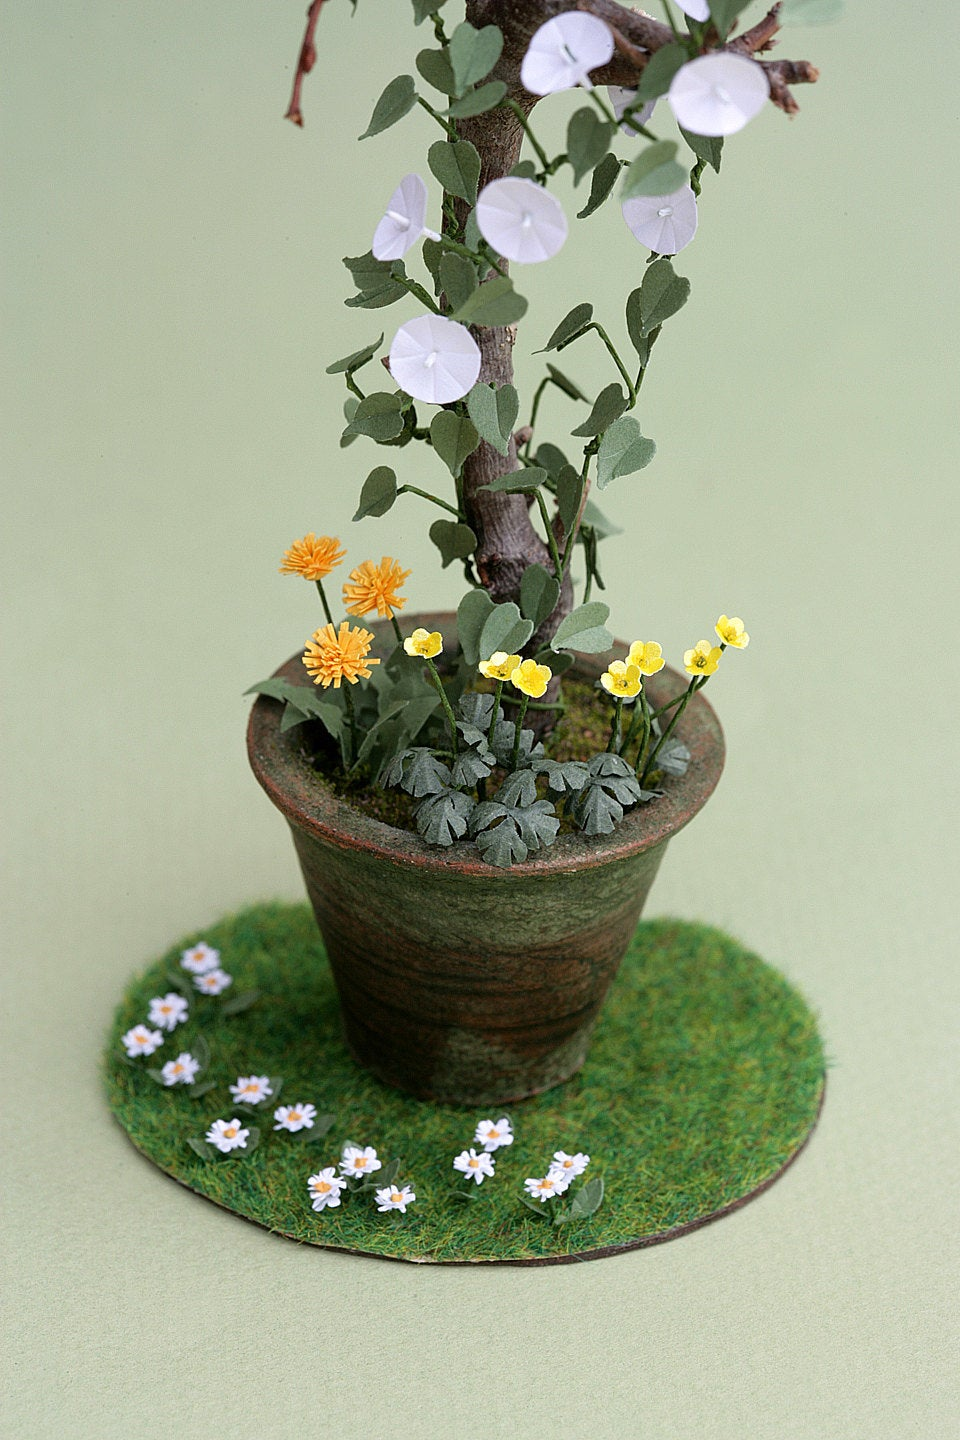 Buttercup Paper Flower Kit  for 1/12th scale Dollhouses, Florists and Miniature Gardens